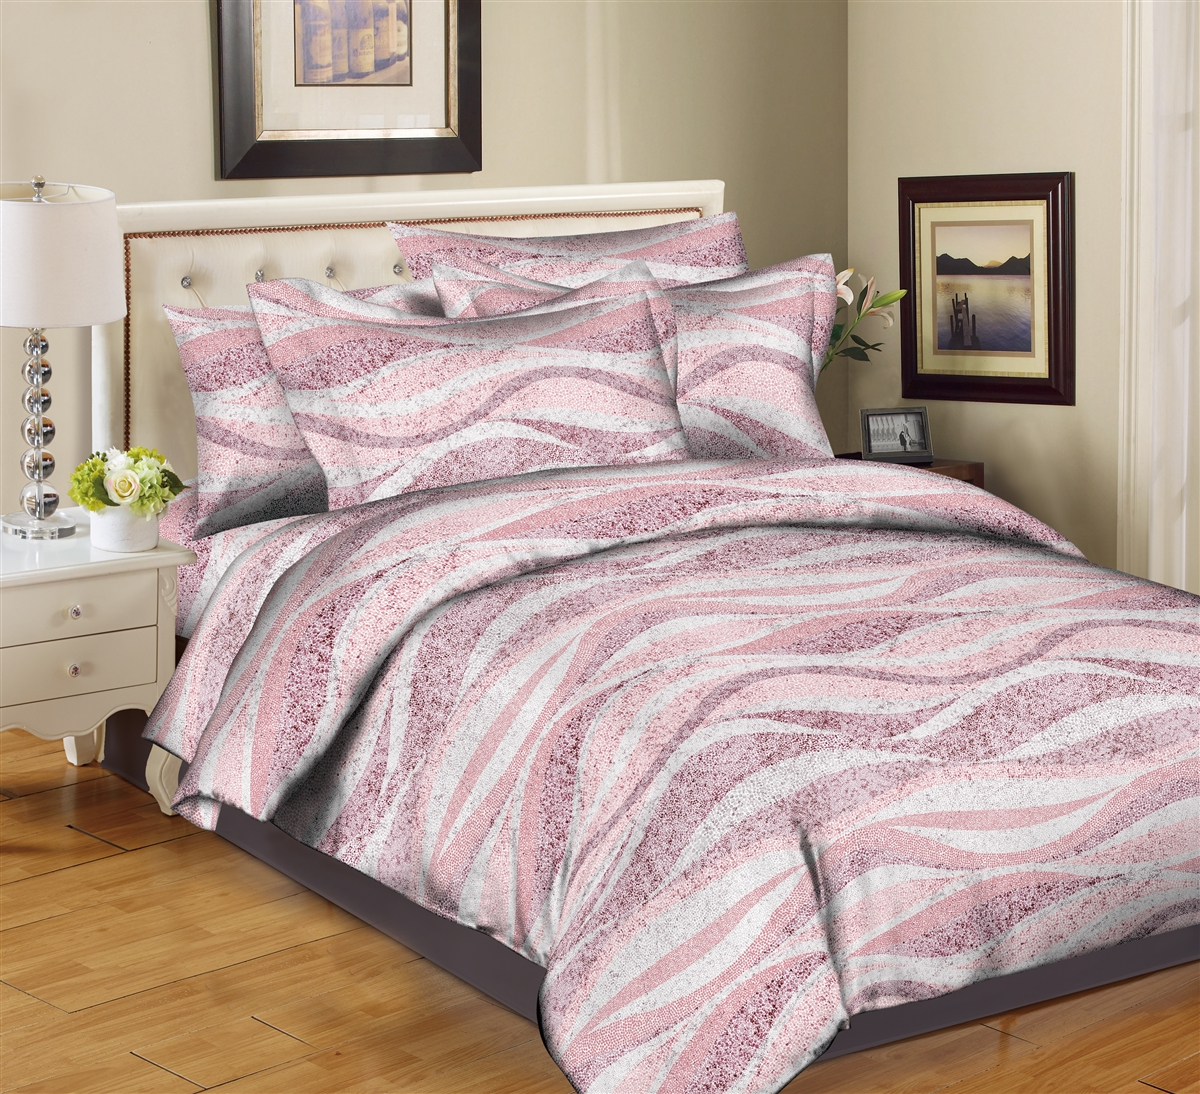 Better Bed Collection: Sandy Waves- Pink 8PC Twin Bedding Set